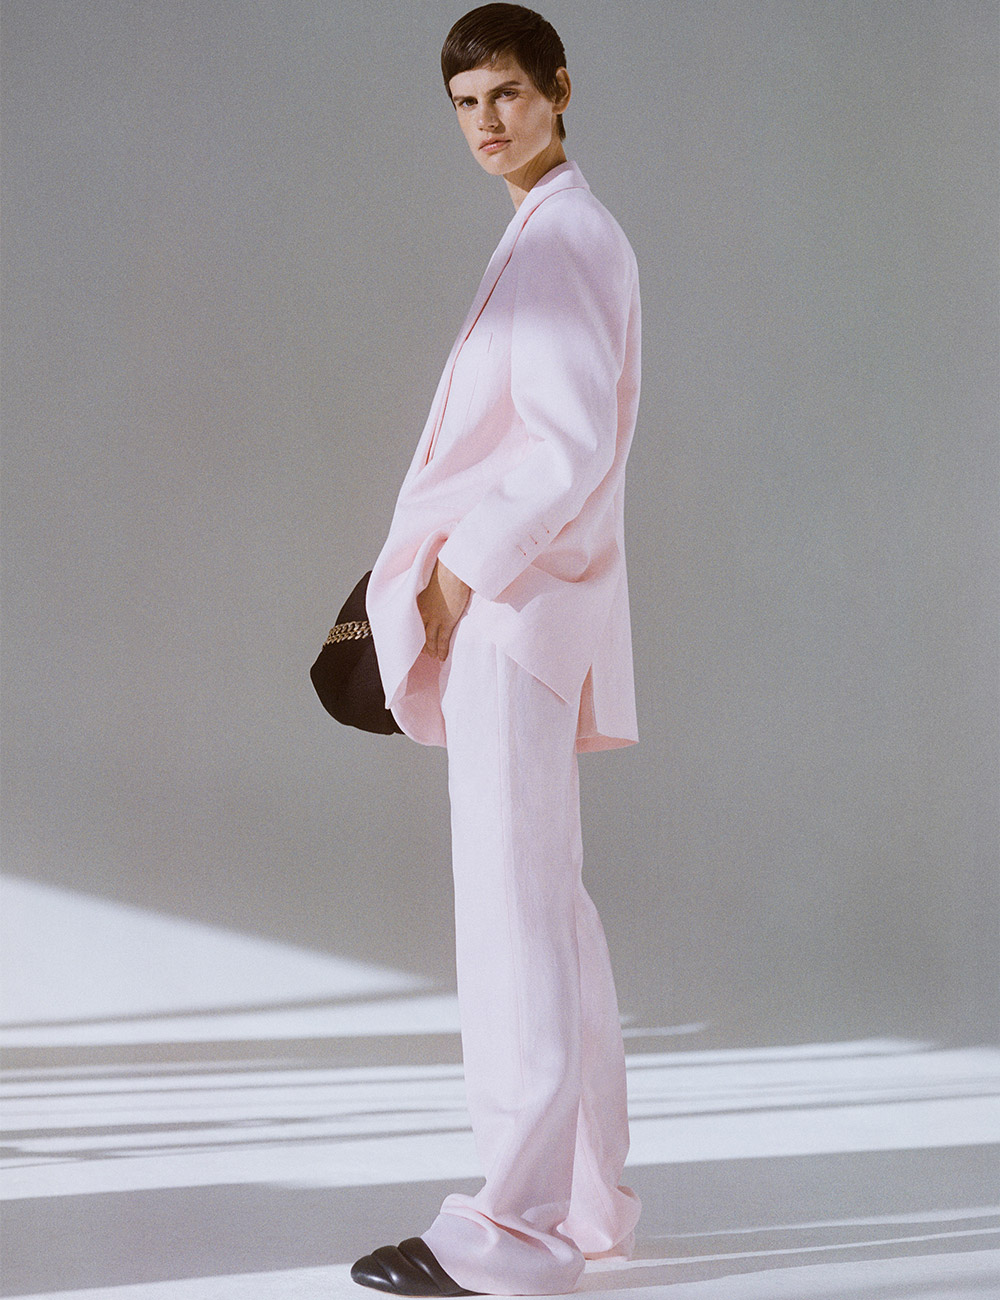 SS21 Look 21: Pink Suit